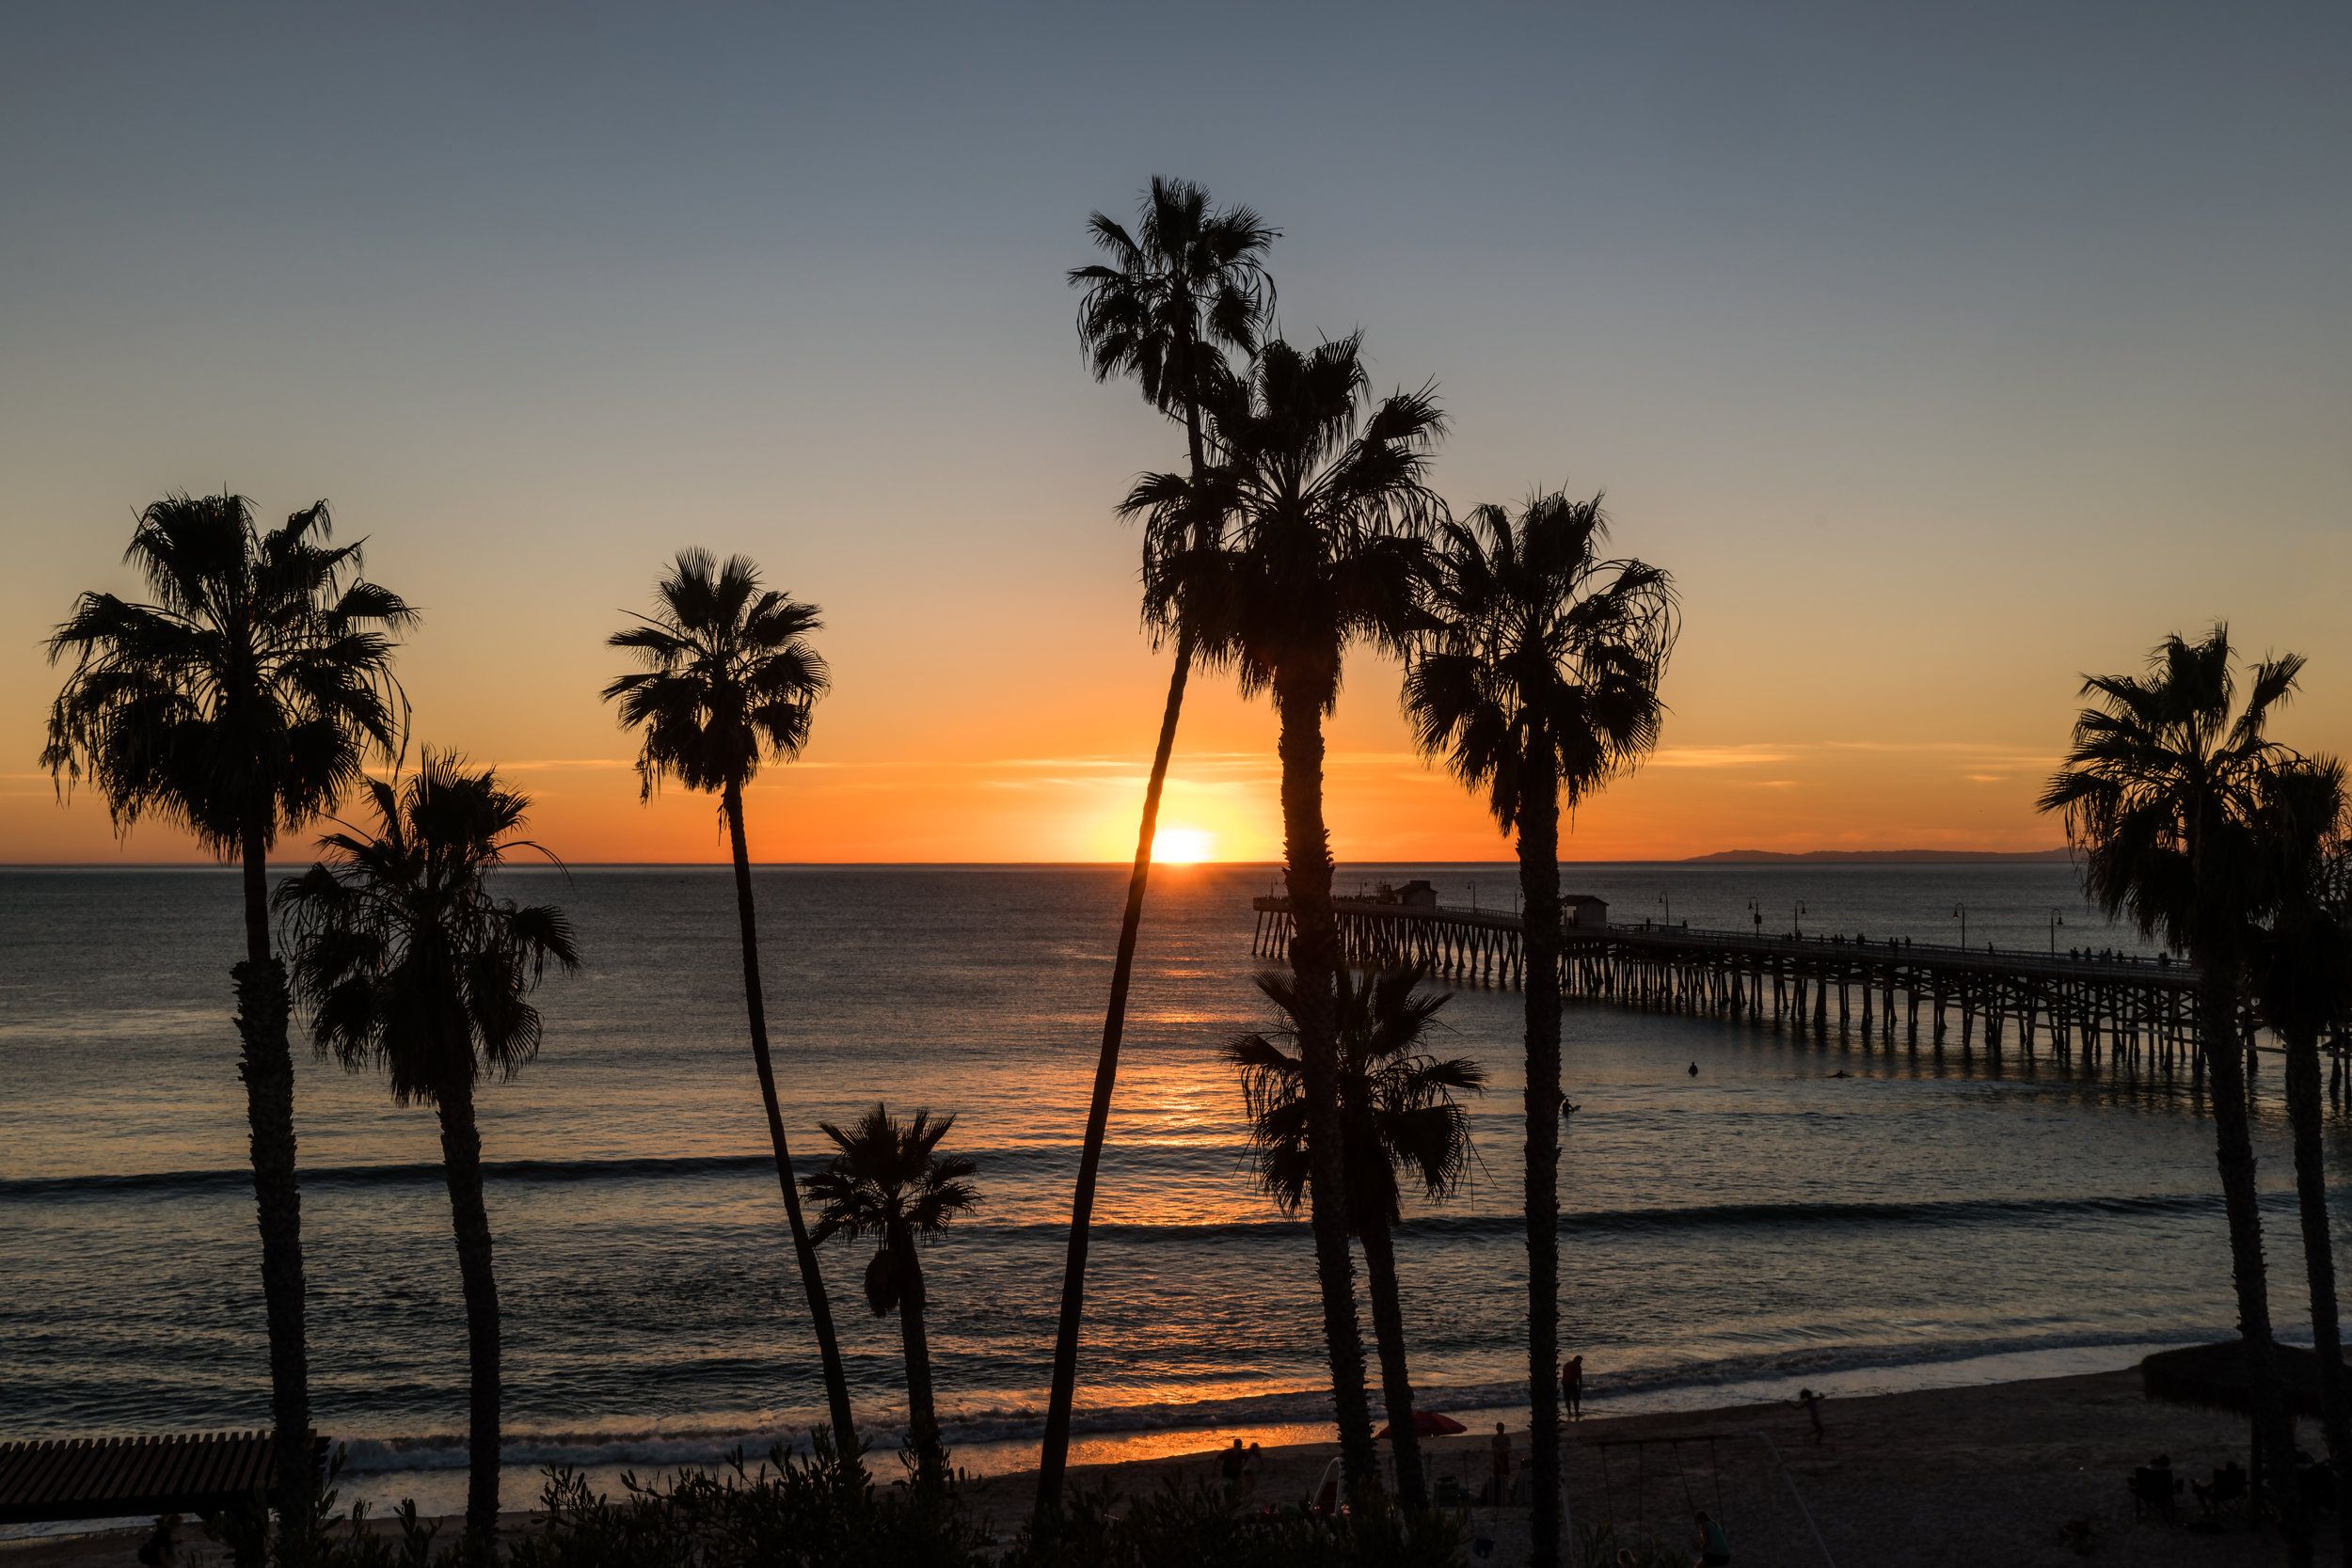 A photo taken during sunset at The San Clemente Pier.